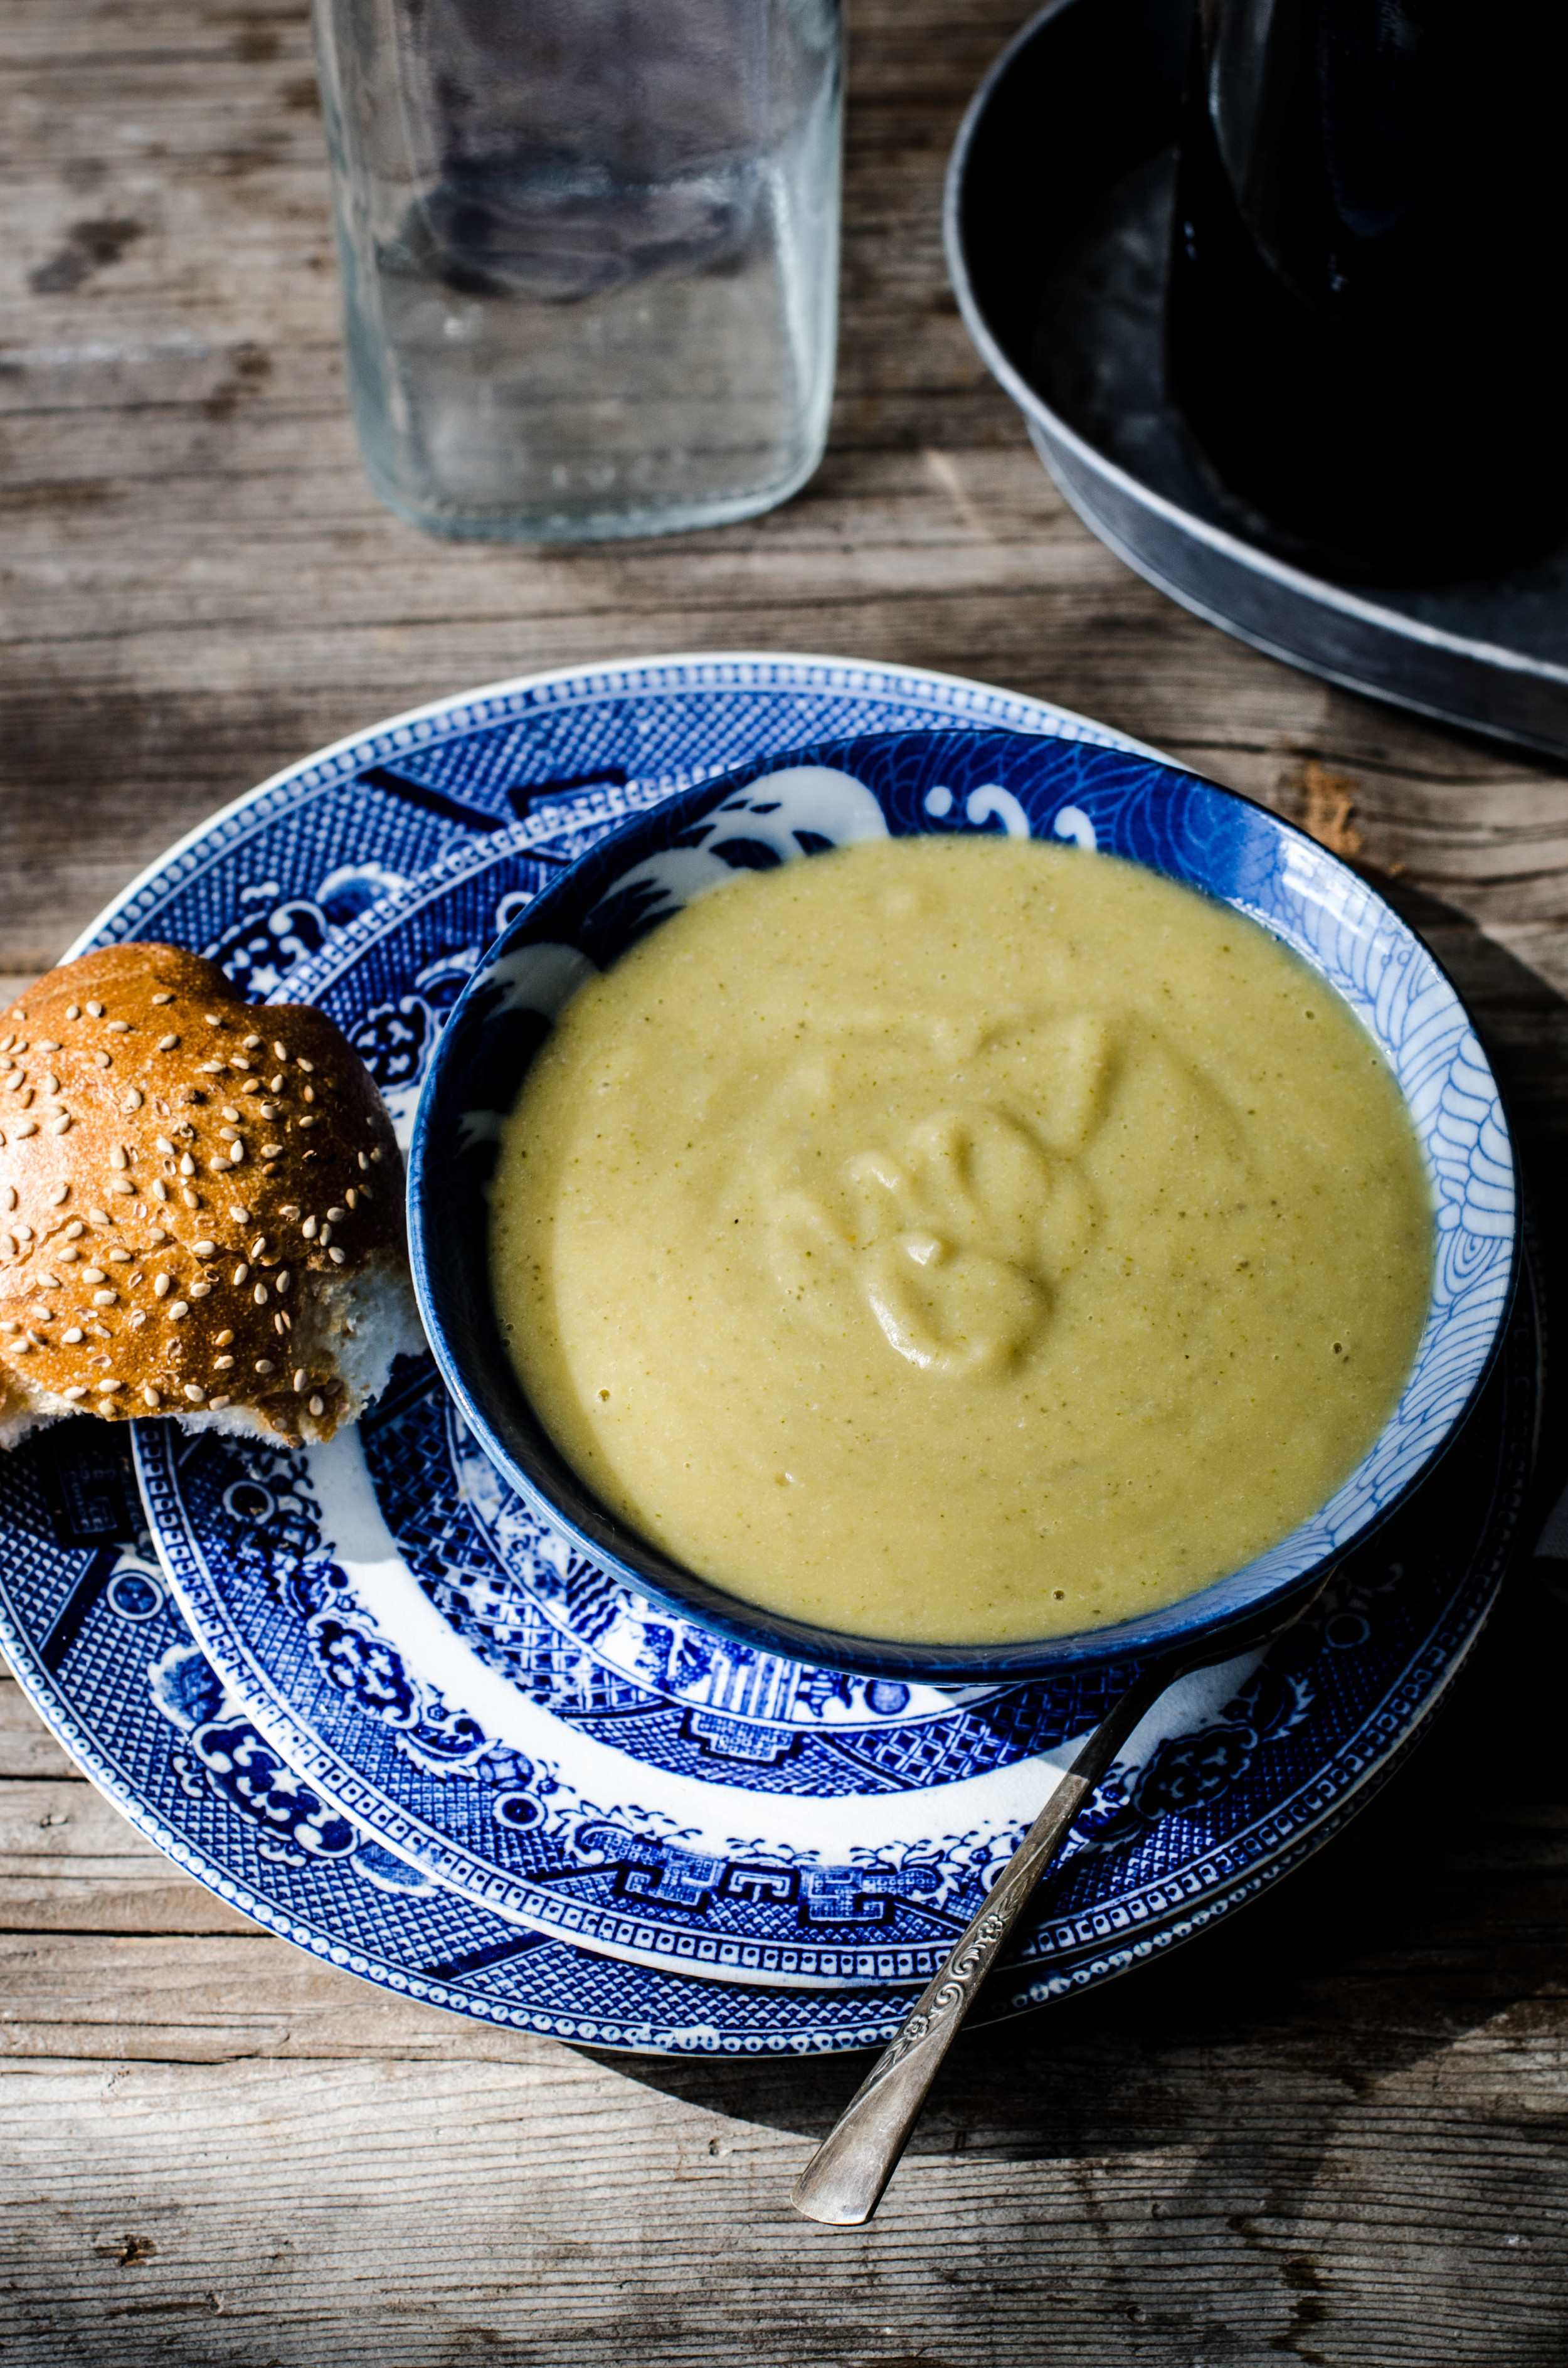 ROSE & IVY Journal Fom Farm to Plate White Bean Broccoli and Potato Soup